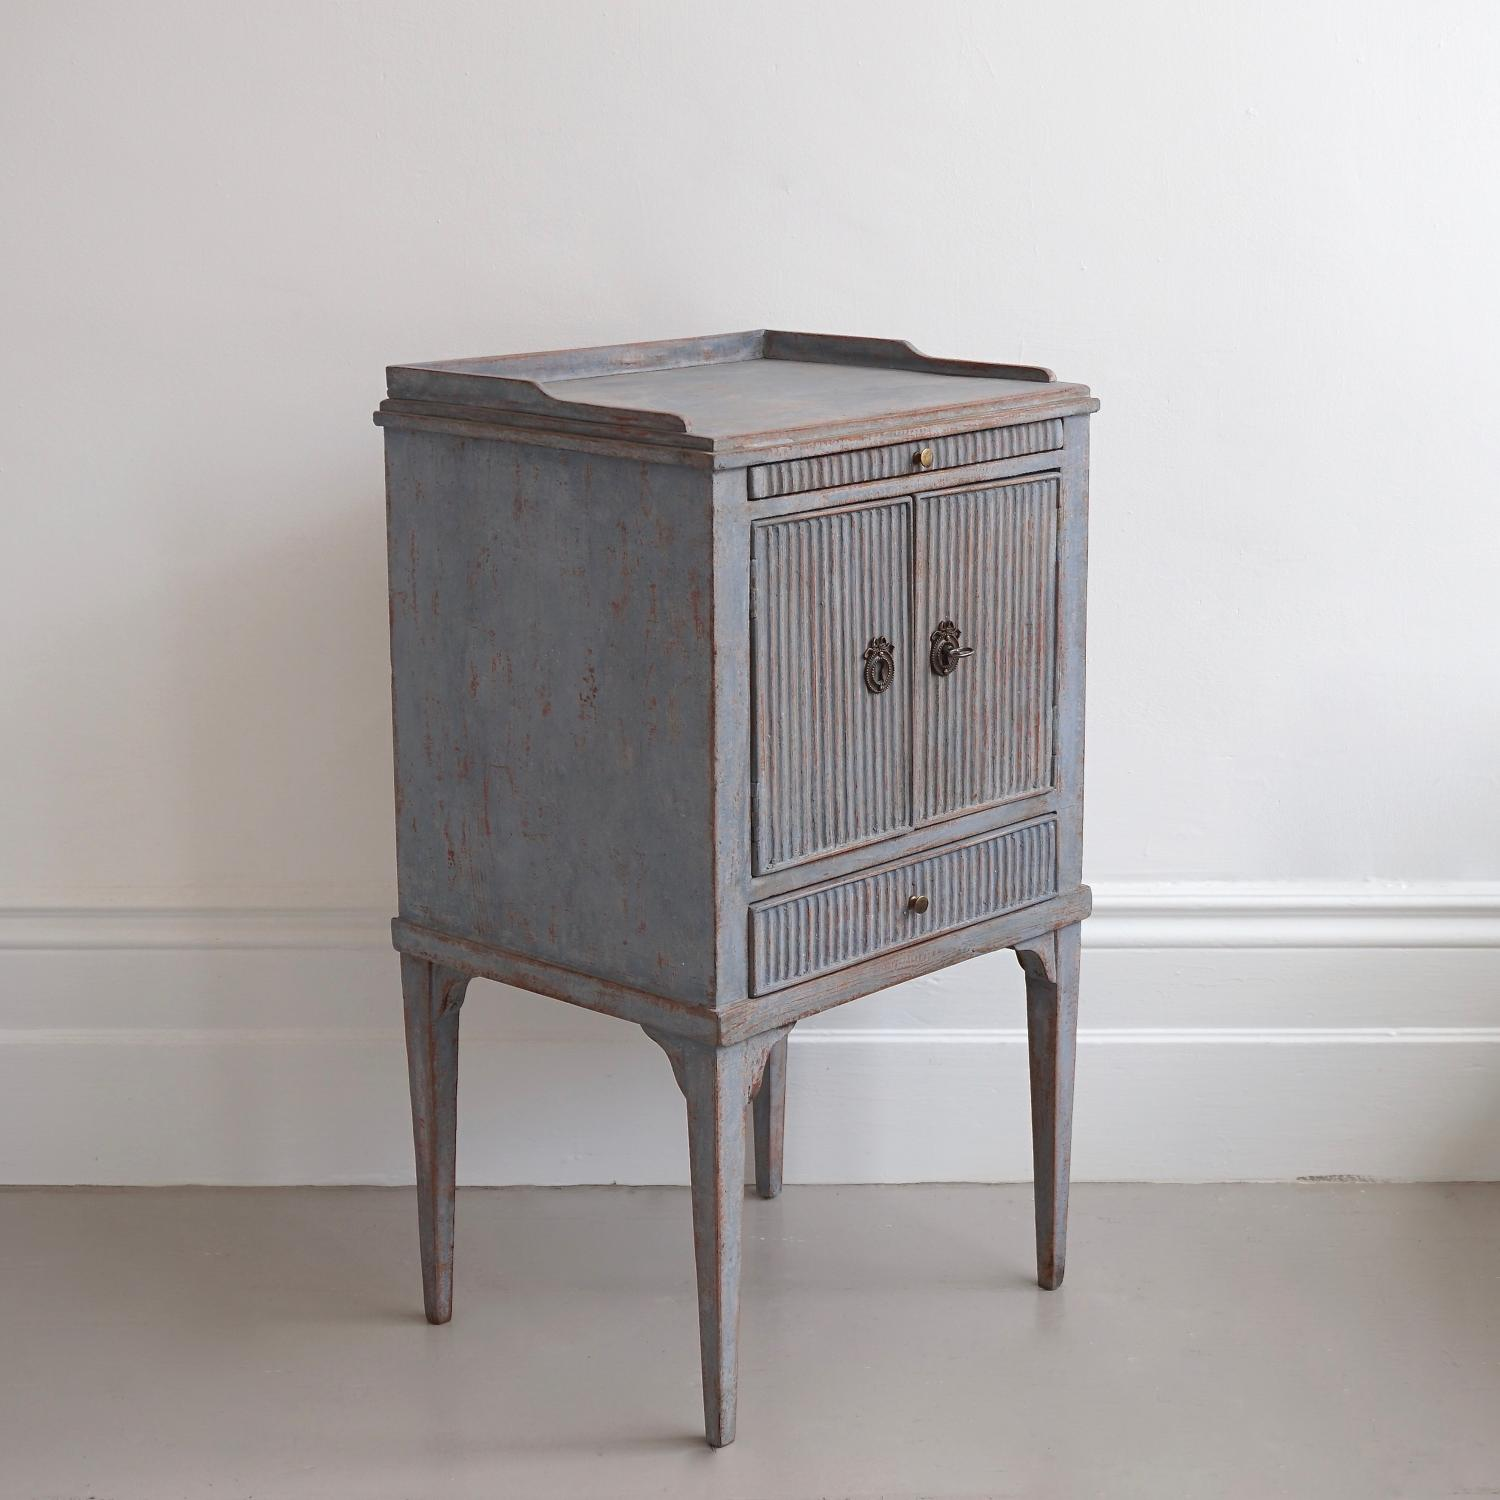 RARE 19TH CENTURY SWEDISH BEDSIDE CABINET